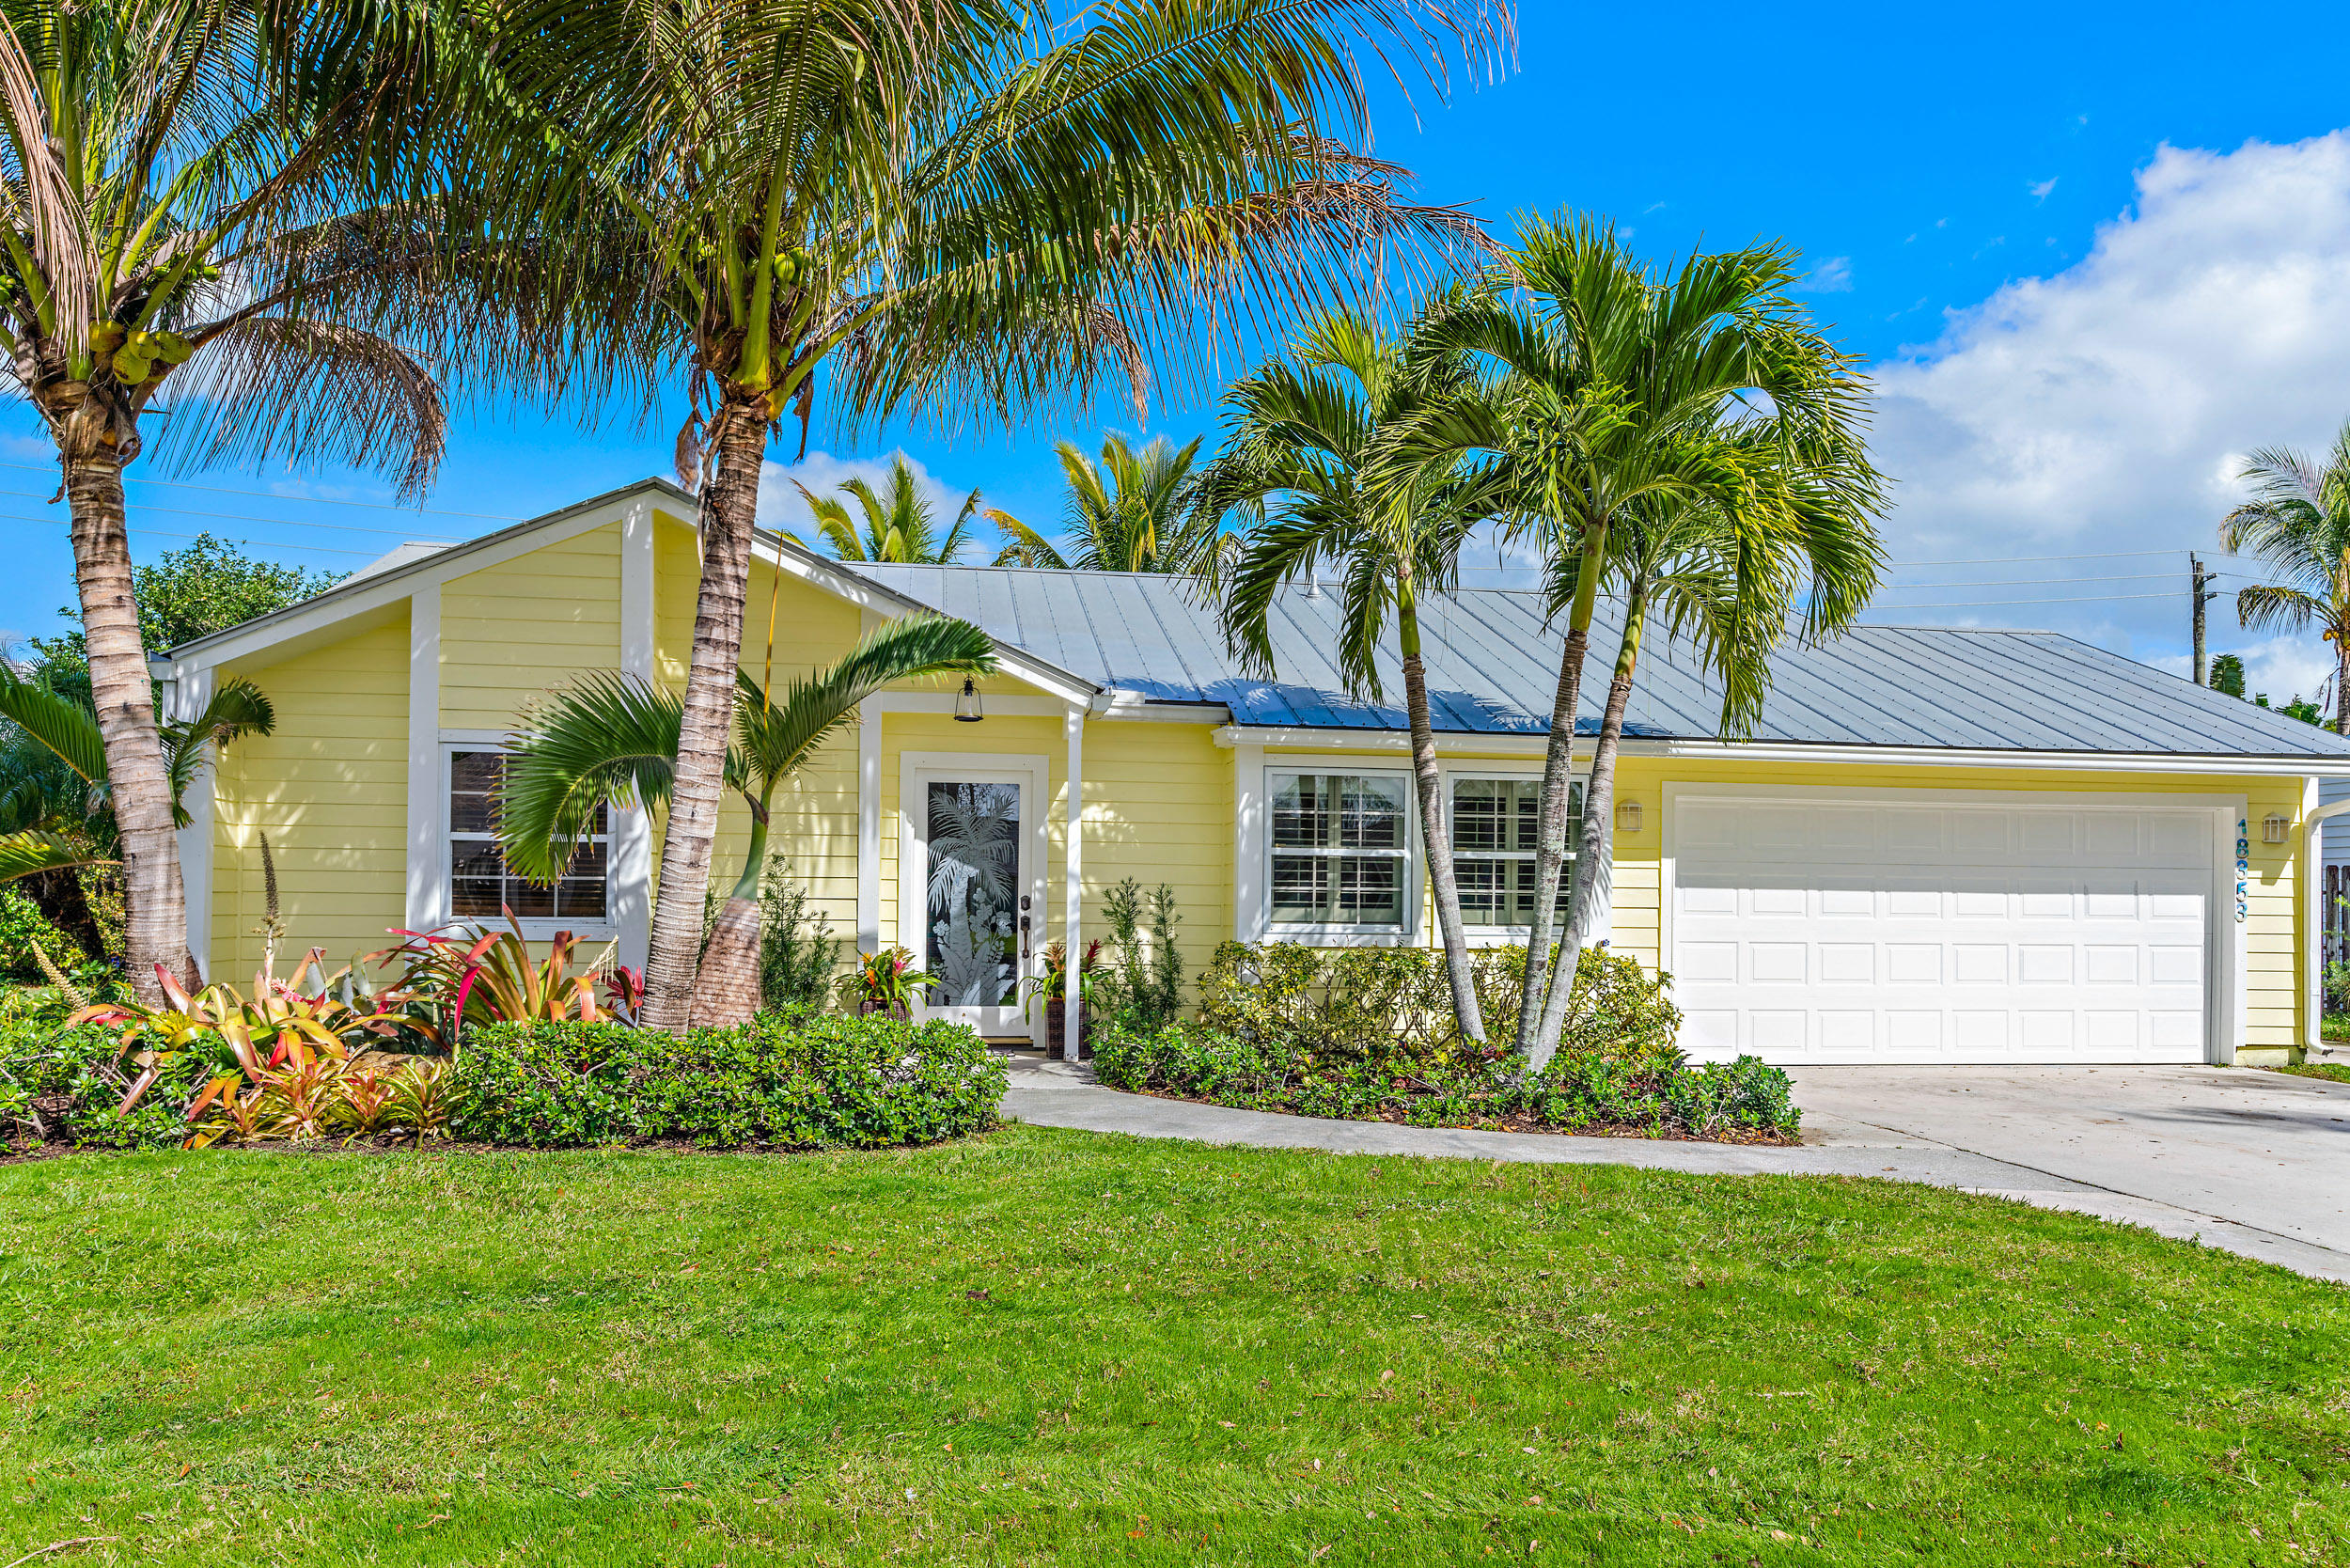 18353 Flagship Circle, Jupiter, Florida 33458, 4 Bedrooms Bedrooms, ,2 BathroomsBathrooms,Single Family,For Sale,Flagship,RX-10505137